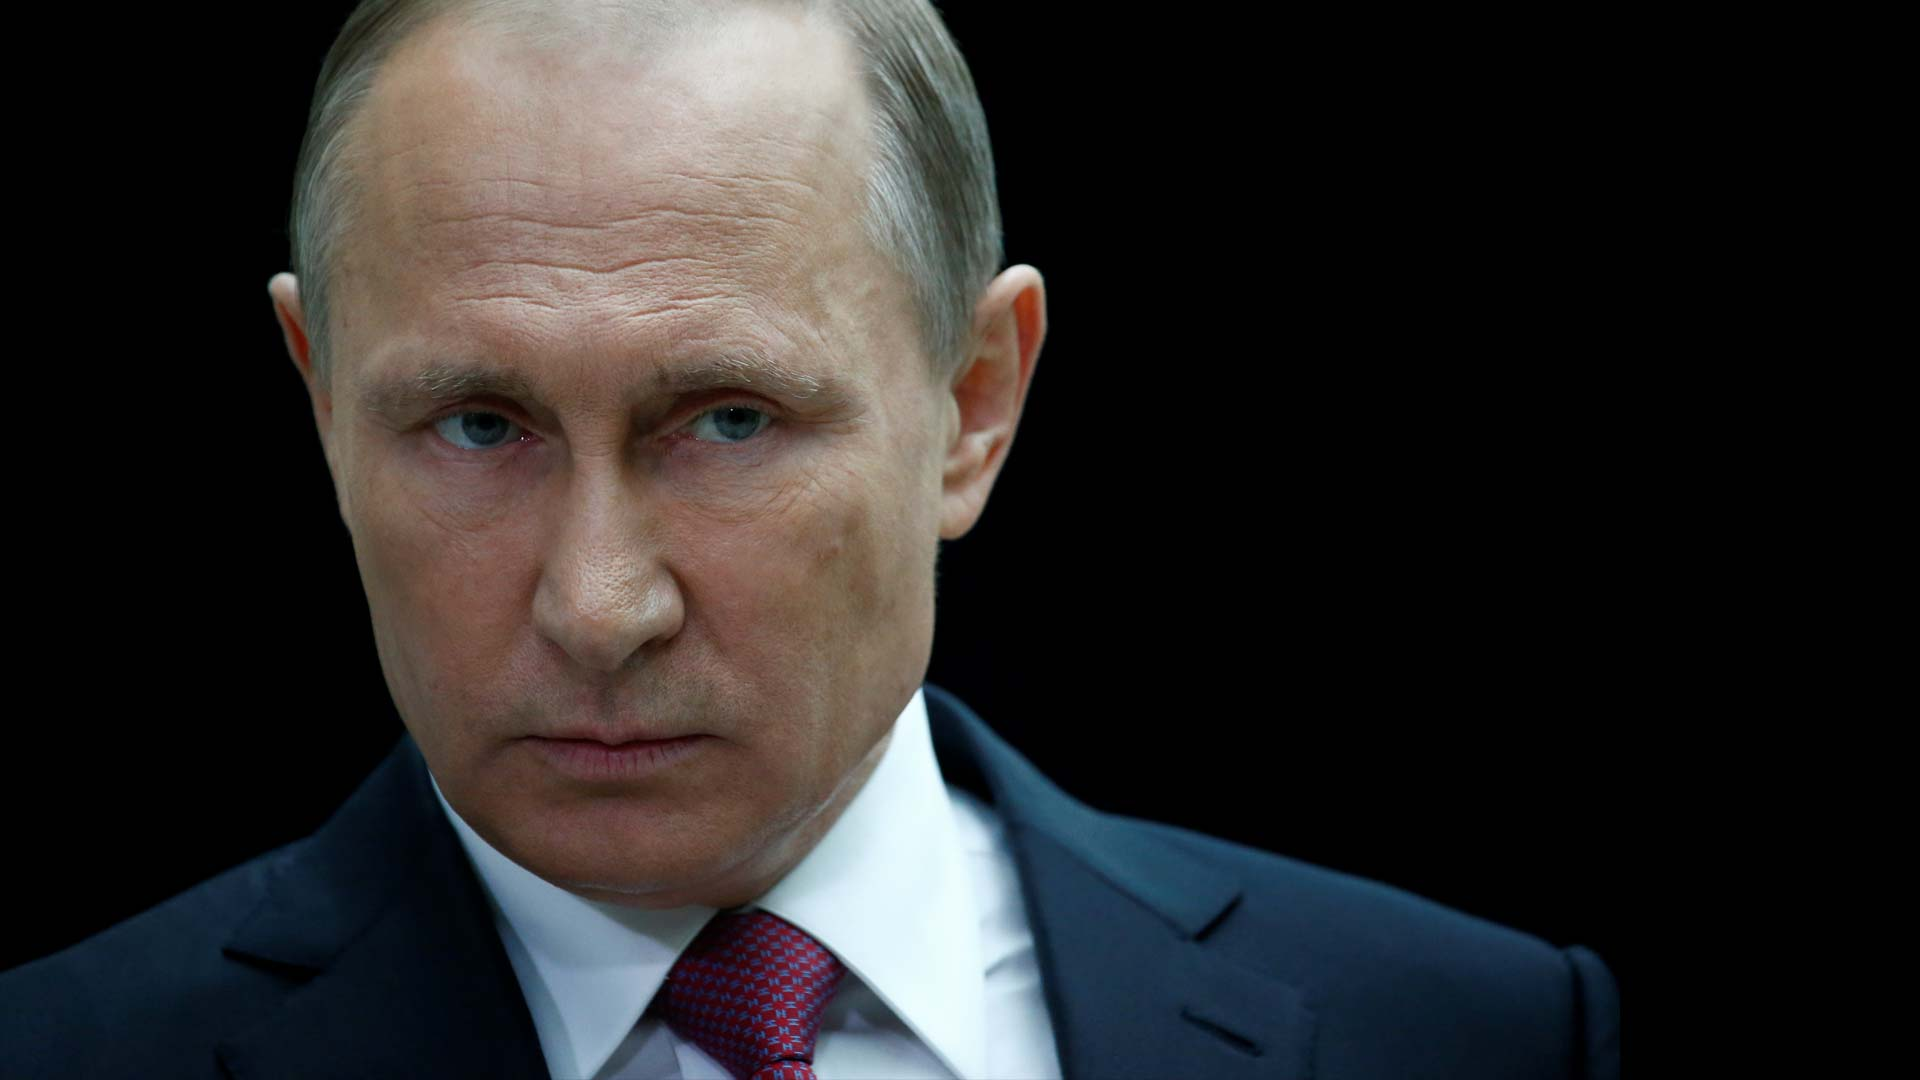 FRONTLINE investigates how the U.S. struggled to confront Vladimir Putin over Russian involvement in the 2016 election, how revenge may have motivated Putin to target American democracy, and the U.S. responses under Presidents Obama and Trump.